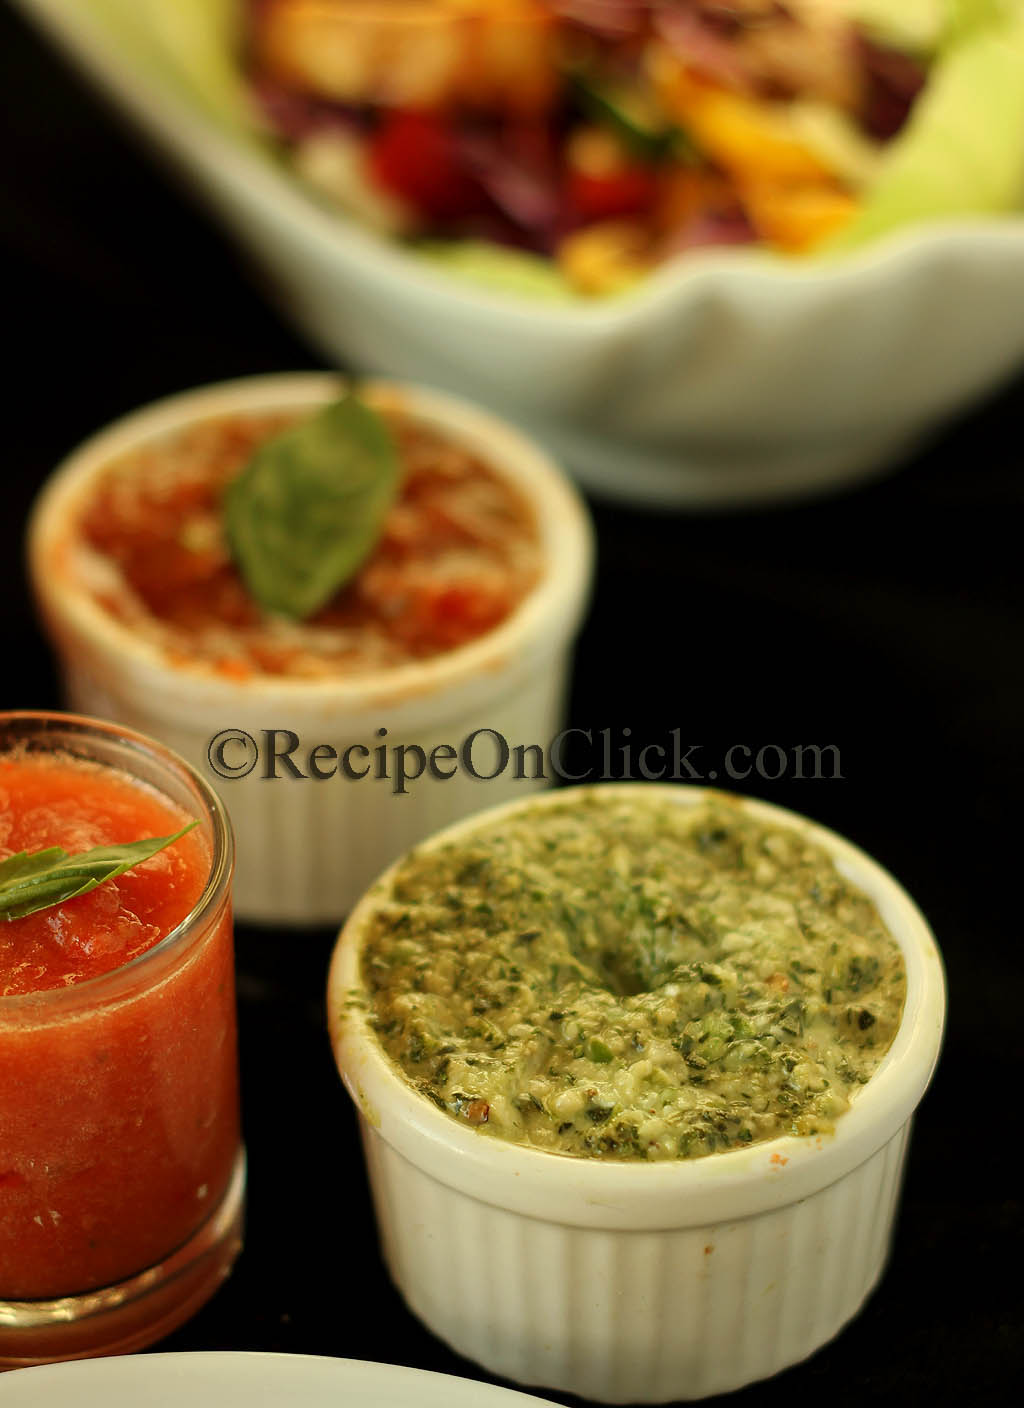 Pesto with Cashew nuts and hung curd with hint of mint